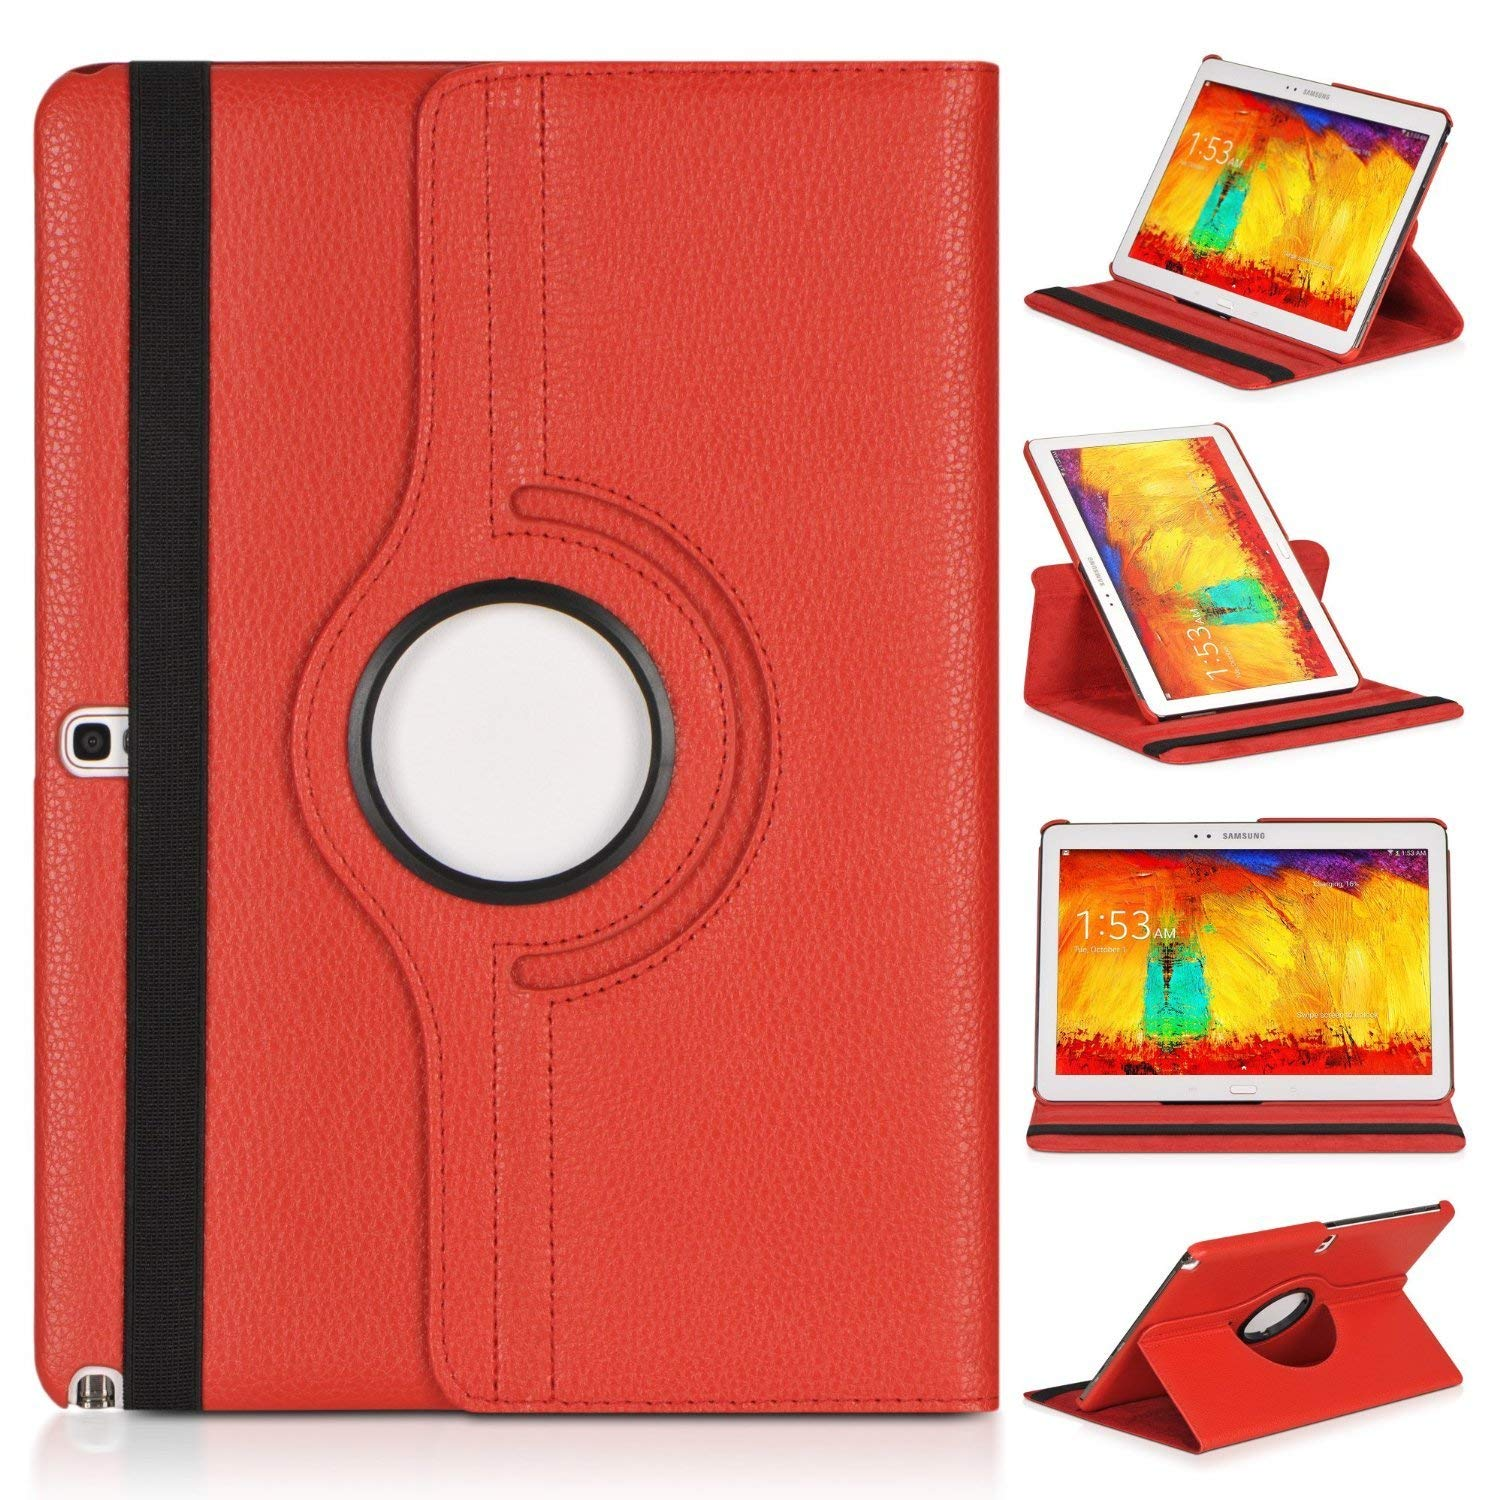 360 Degree Rotating Flip PU Leather Case Cover For Samsung Galaxy Note 10.1inch 2014 vision SM-P600 Tablet Cases Note 10.1 P600360 Degree Rotating Flip PU Leather Case Cover For Samsung Galaxy Note 10.1inch 2014 vision SM-P600 Tablet Cases Note 10.1 P600